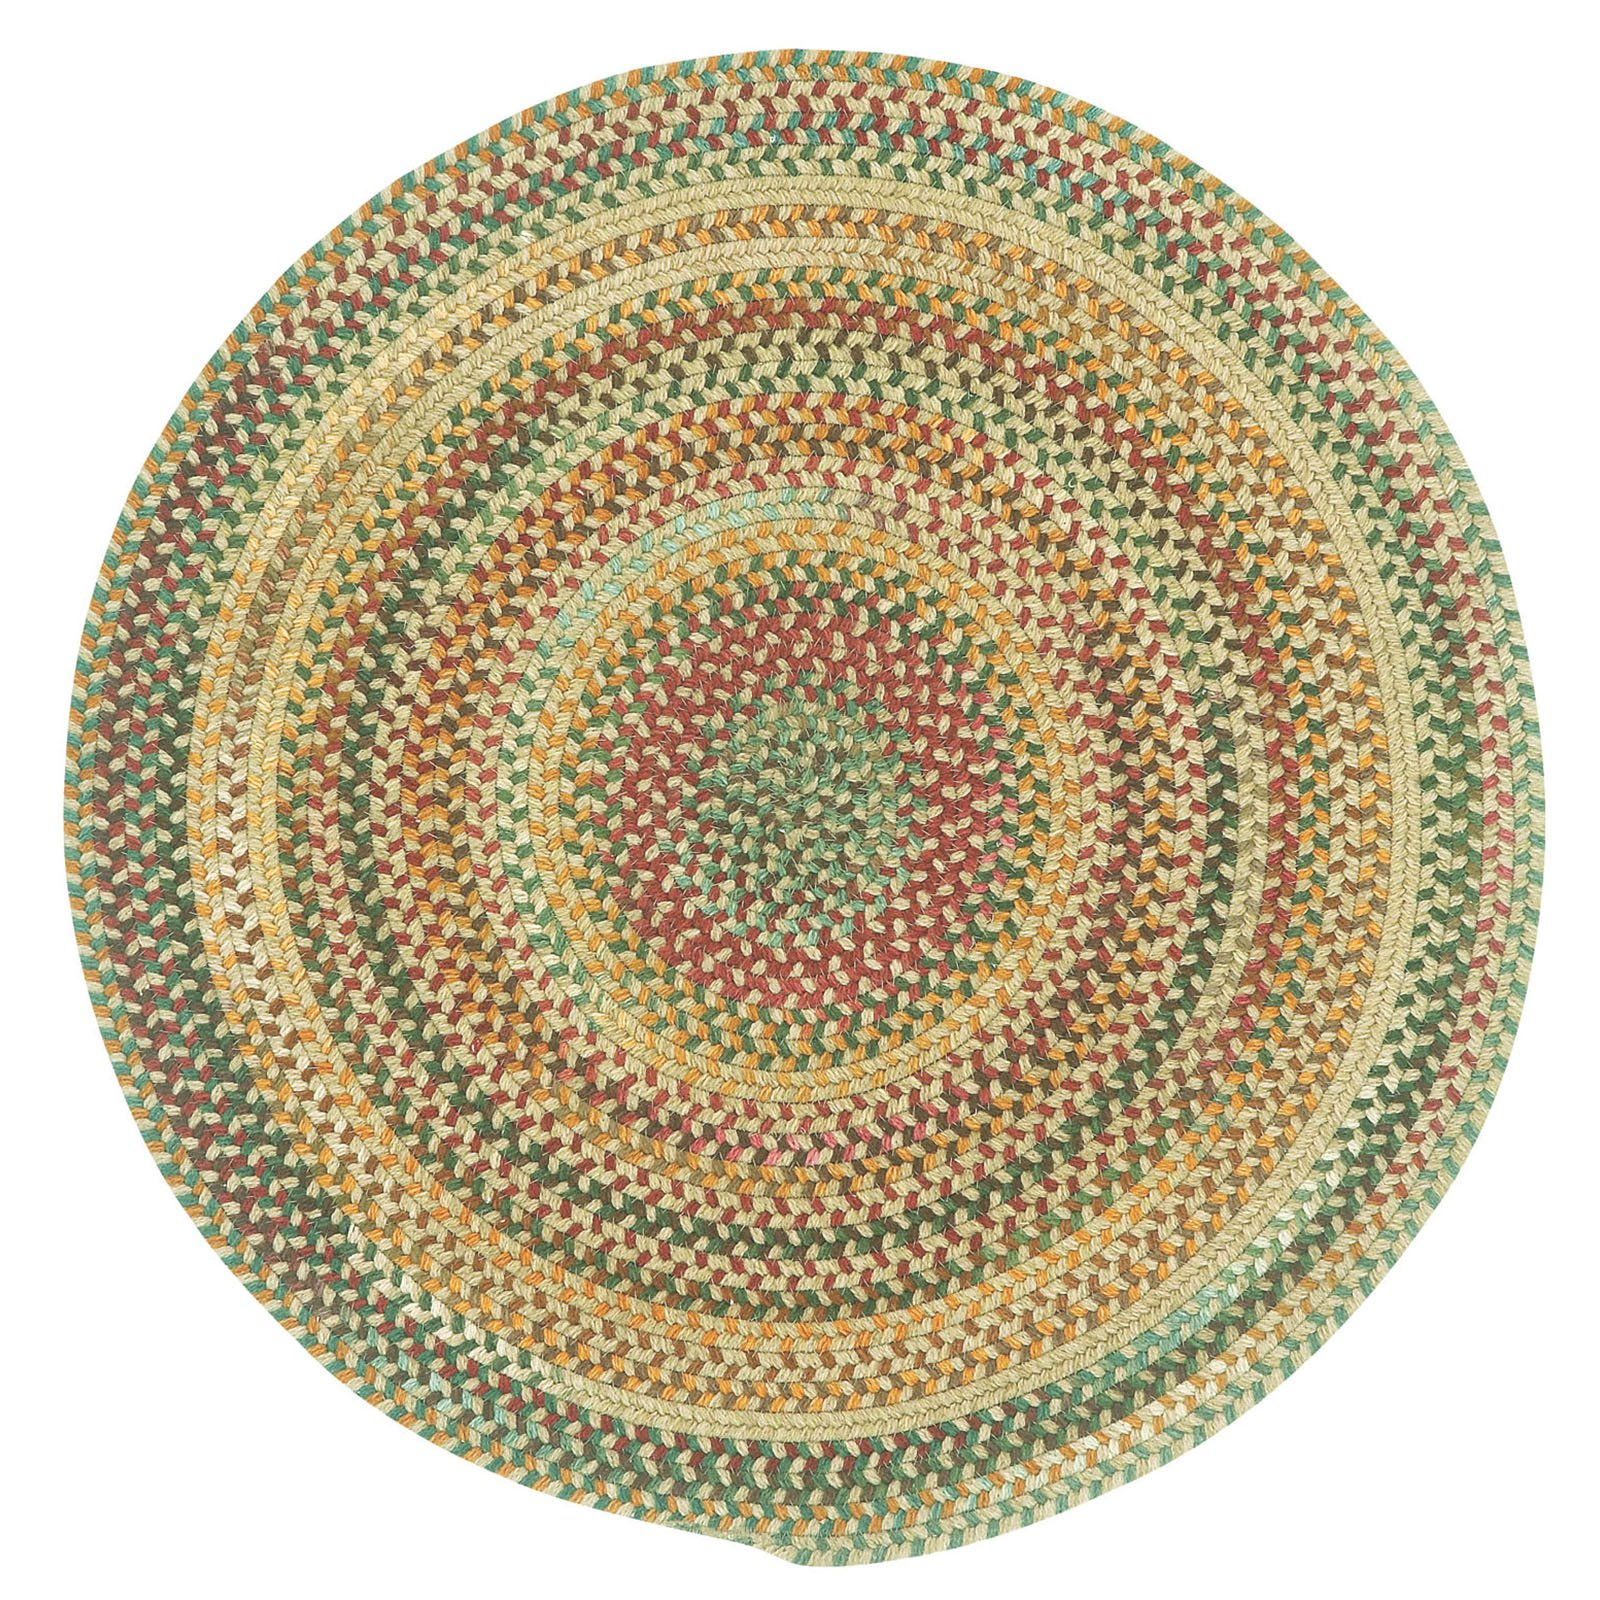 Capel Rugs Sherwood Forest 15 in. Braided Chair Pad